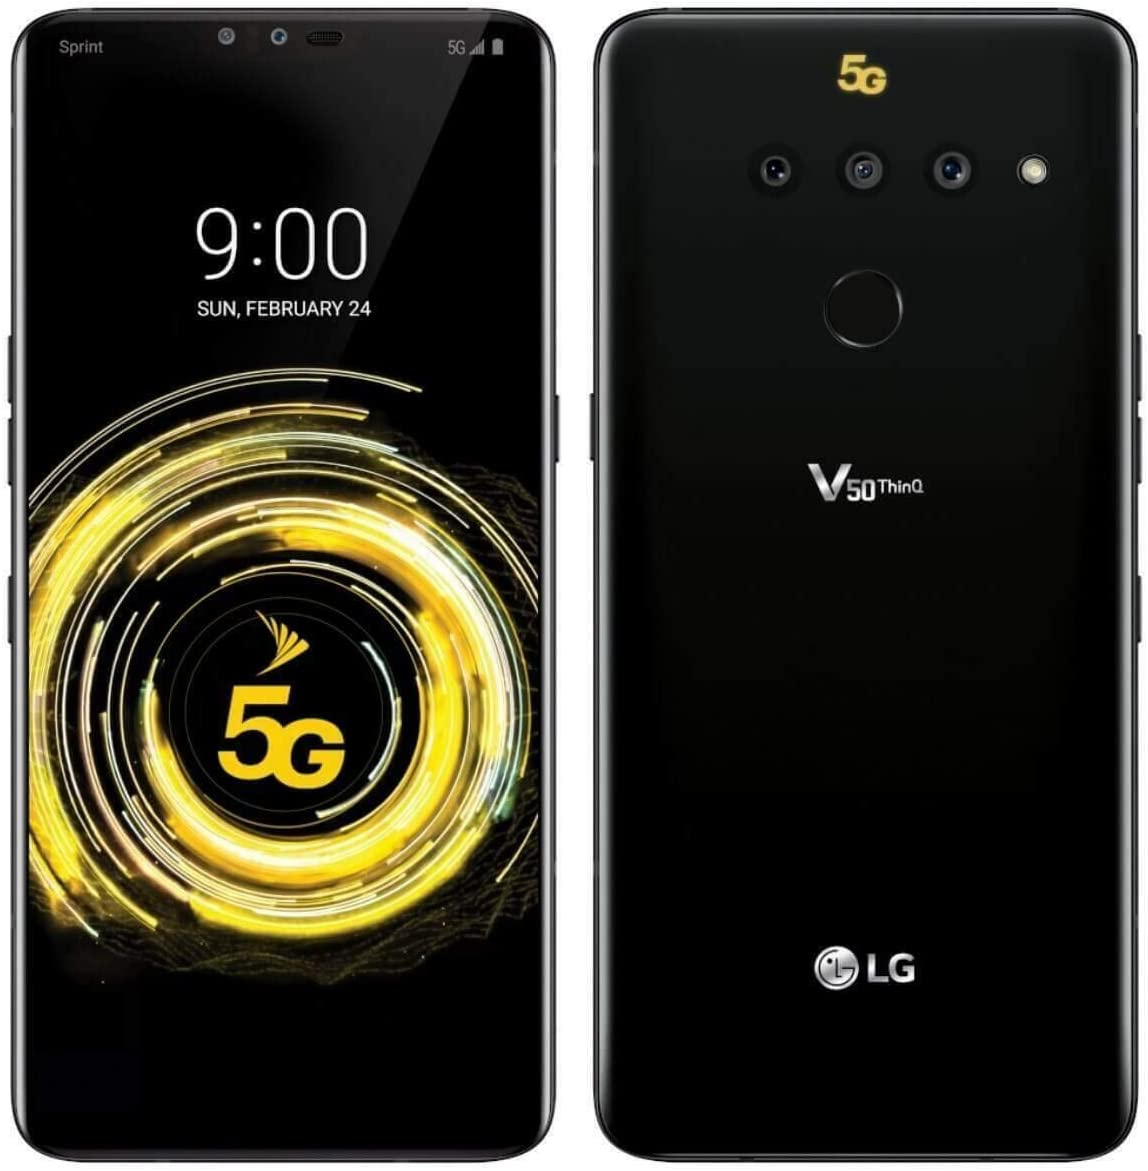 LG V50 ThinQ 128GB LMV450PM Sprint CDMA and GSM Unlocked 5G Smartphone Aurora Black